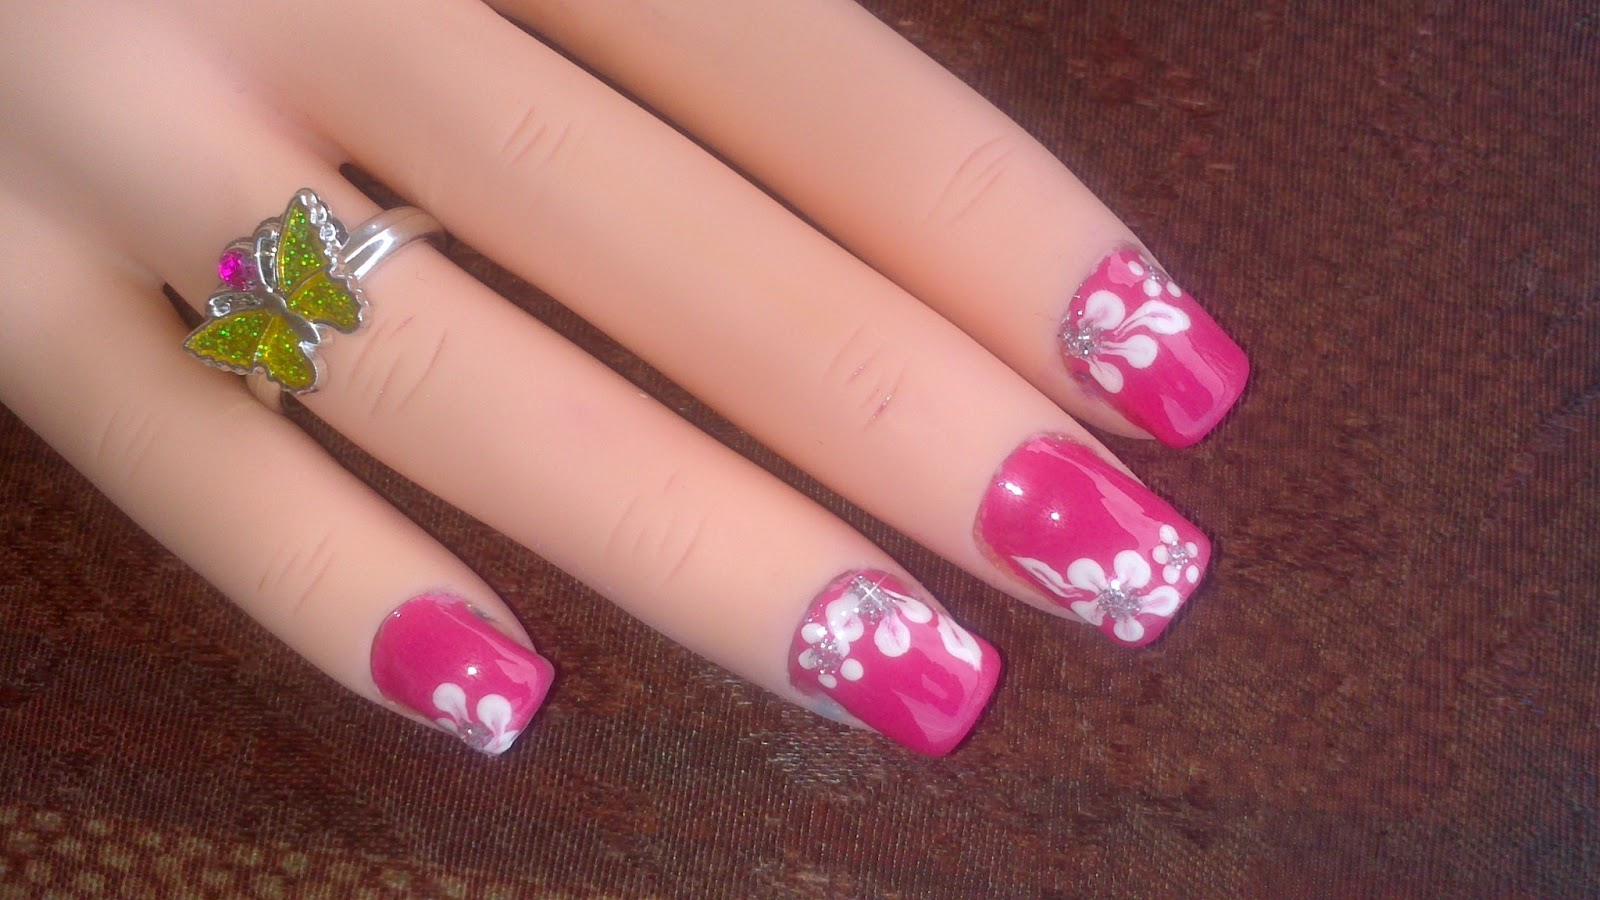 Toe nail art with flowers best toe nail art design ideas for girls view images lnetsa s nailart prinsesfo Choice Image